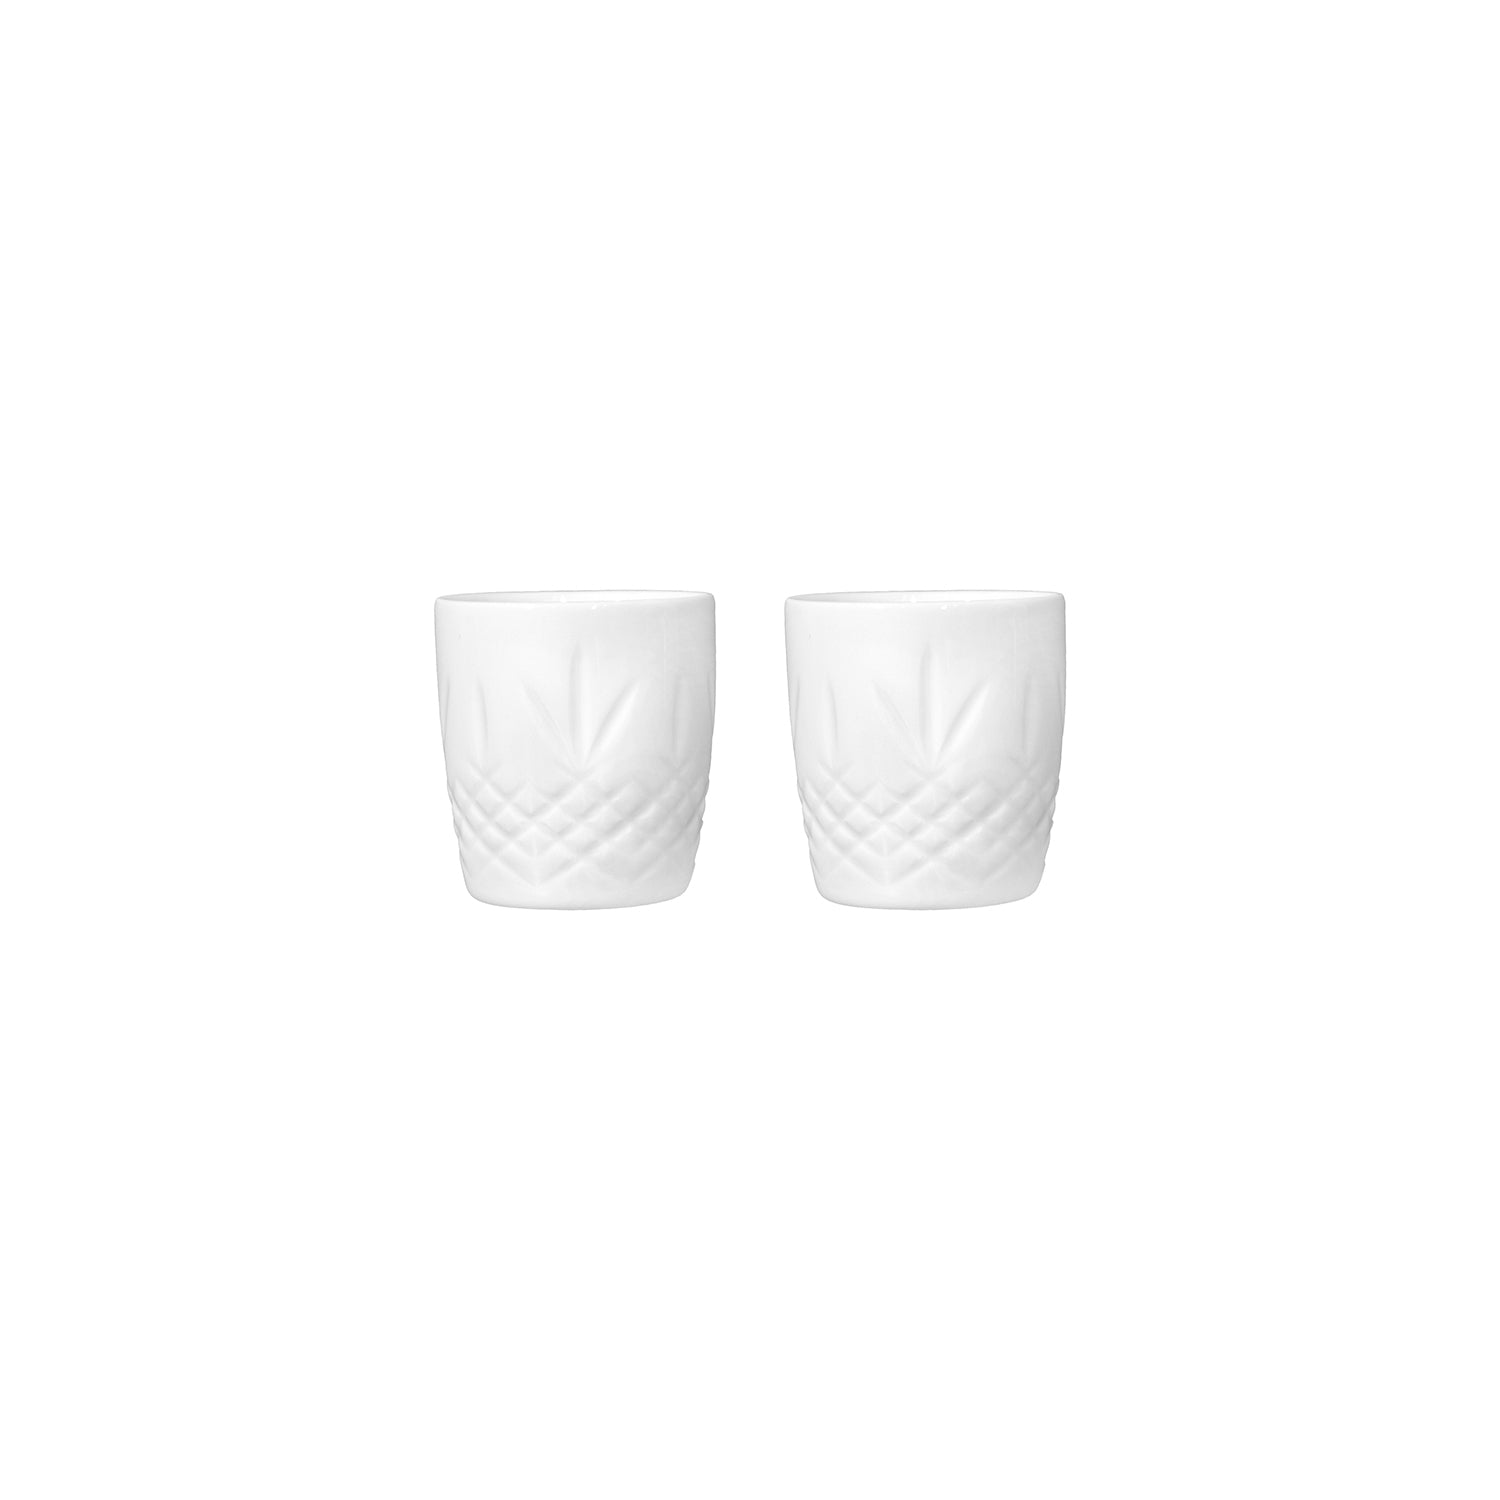 Crispy Mini Mug - 2 Pieces